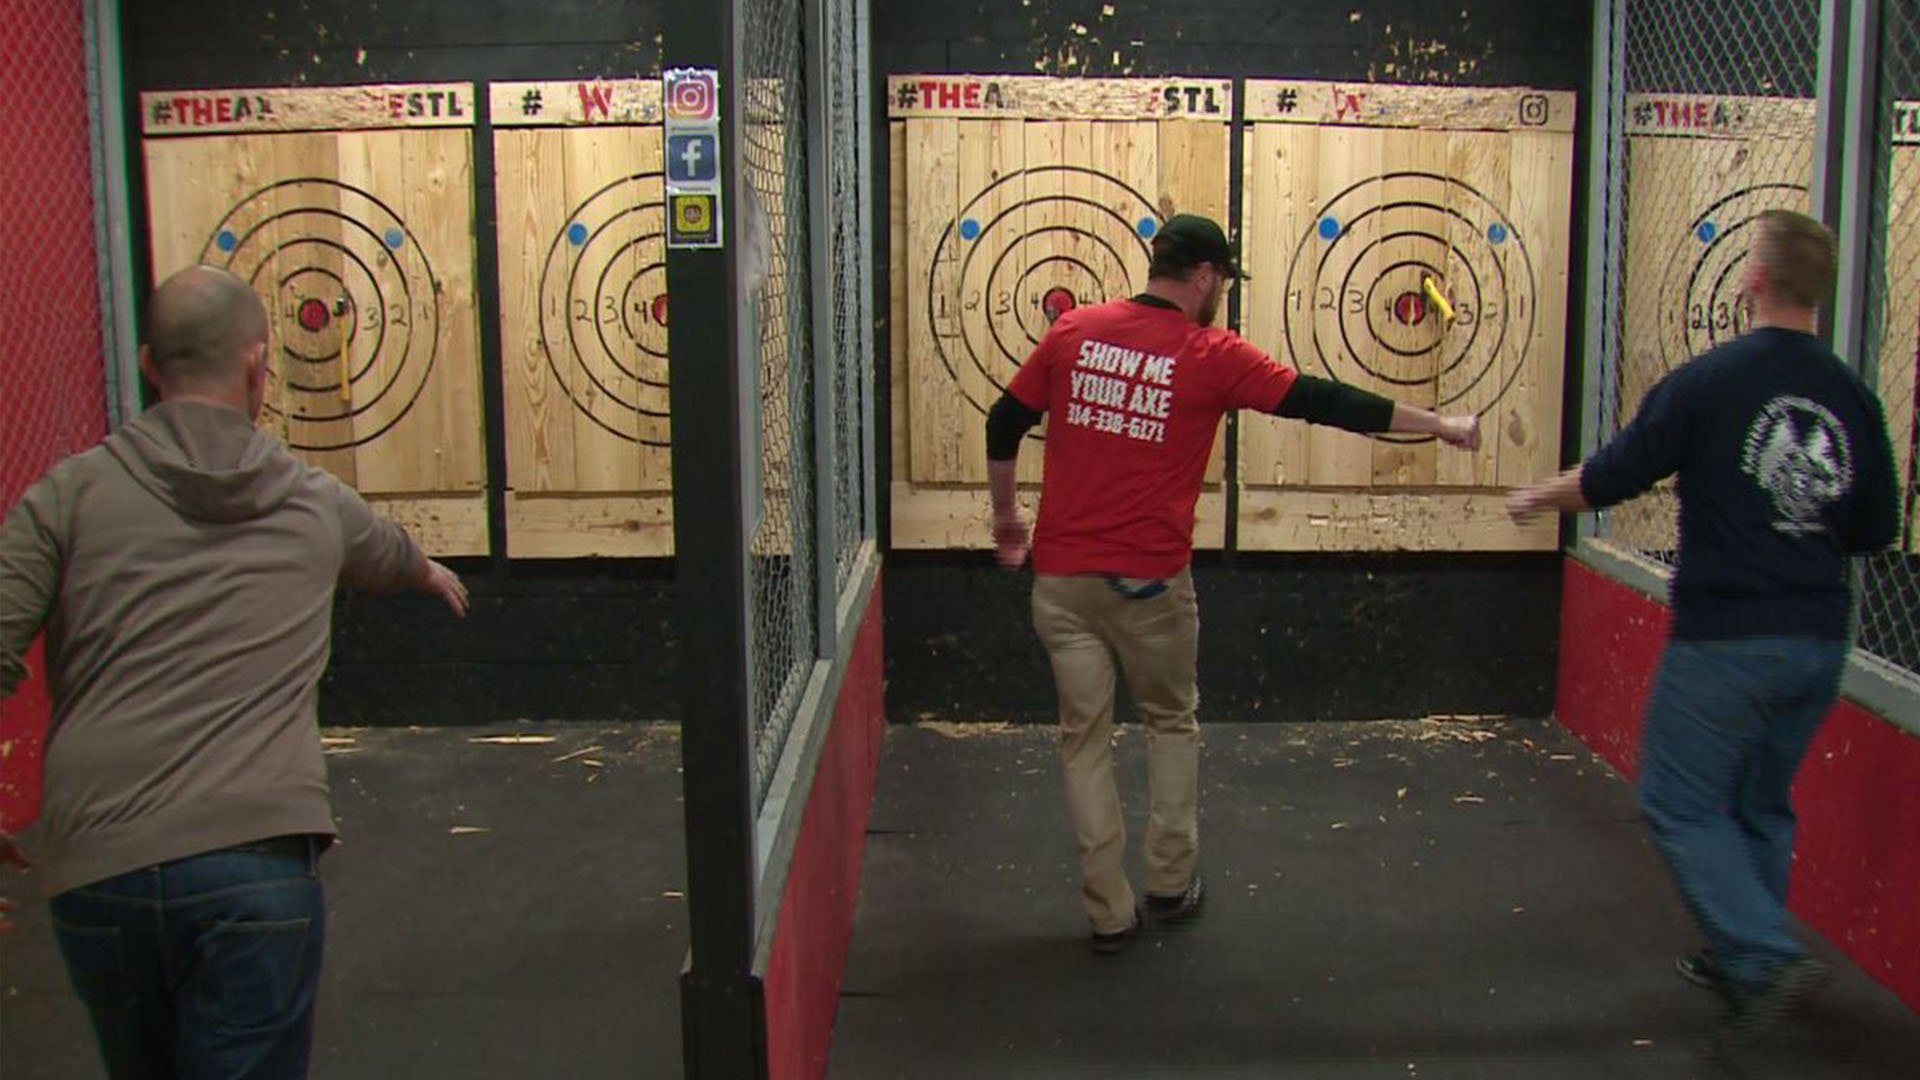 Attendee throw axes to help raise money for a young boy with a rare disease. (Credit: KMOV)